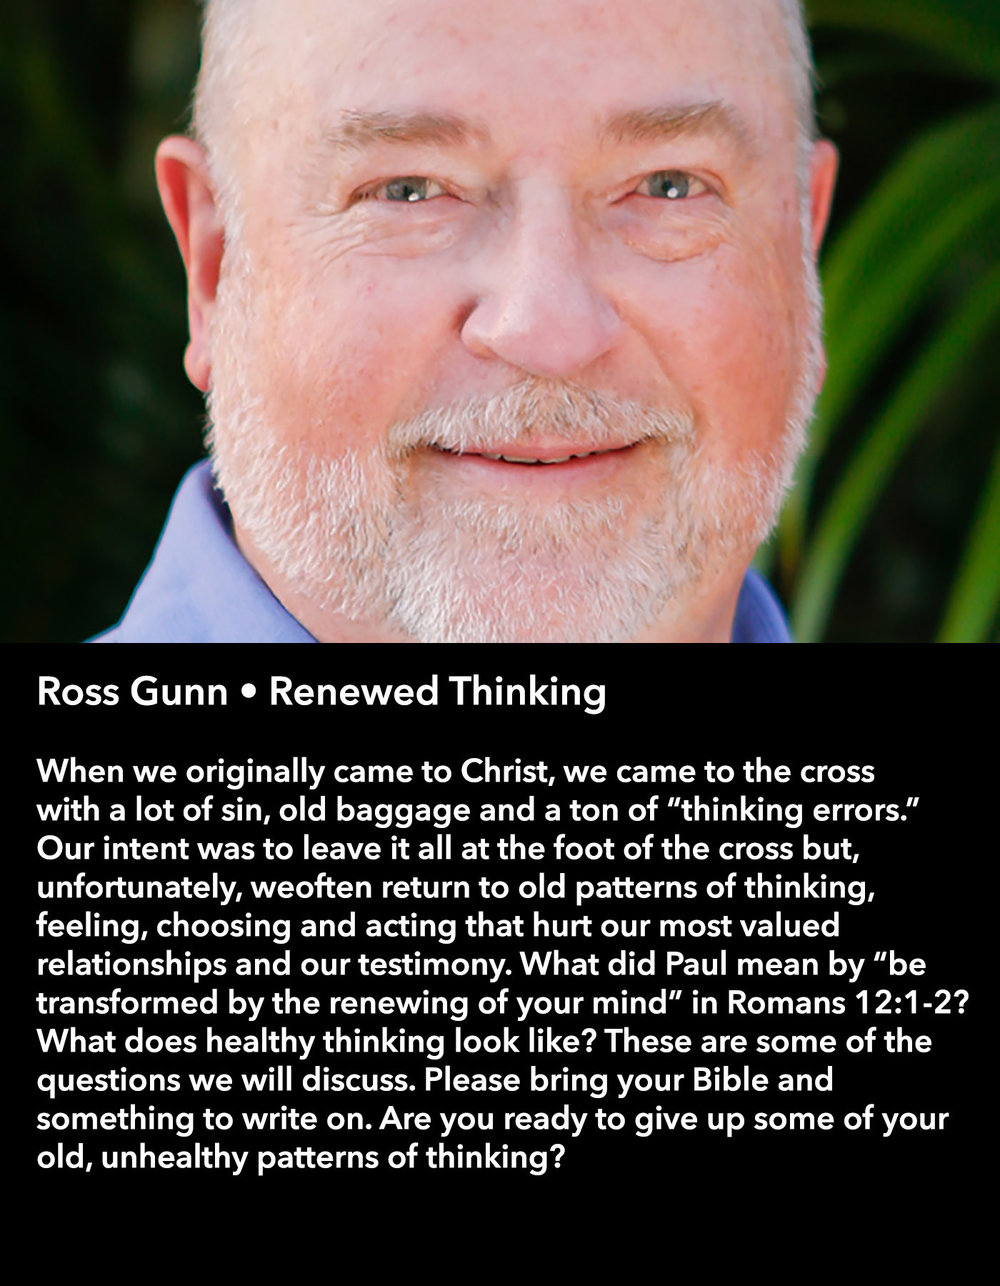 Ross Gunn • Renewed Thinking • Saturday Morning, March 18 • 10:30 – 11:45 am